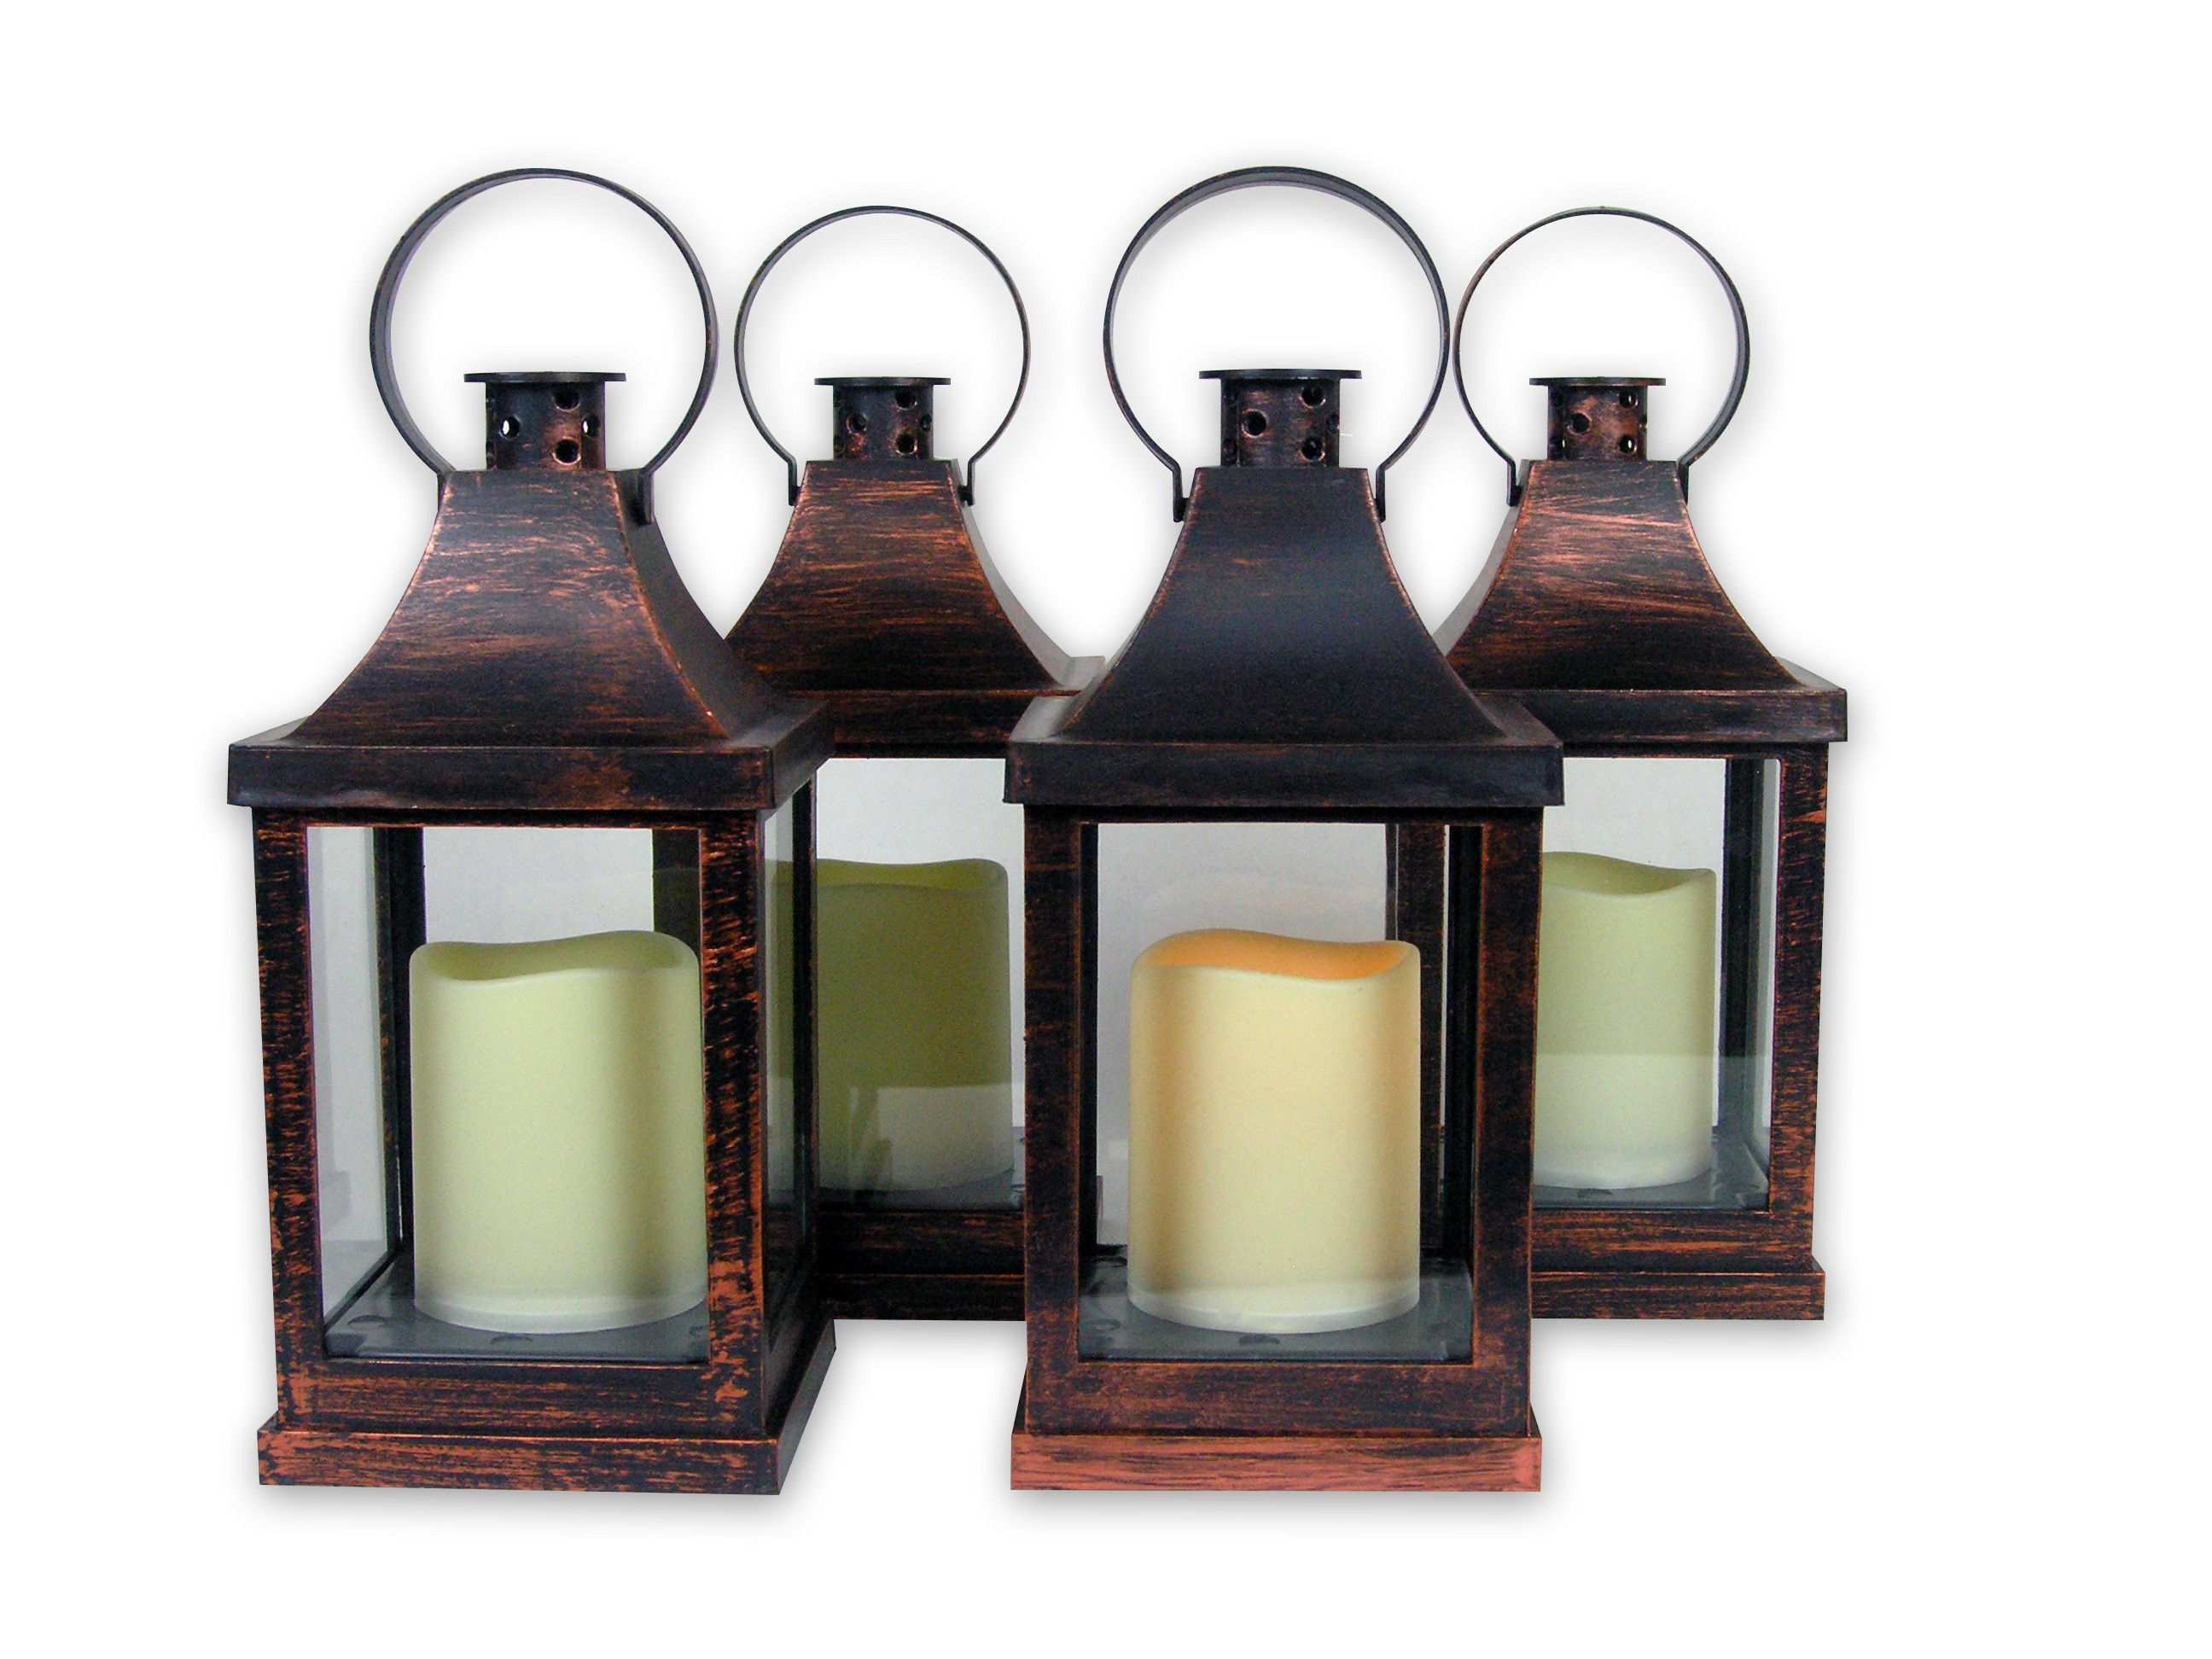 black cfm lantern metal hawthorne of set master lanterns product hayneedle decor decorative